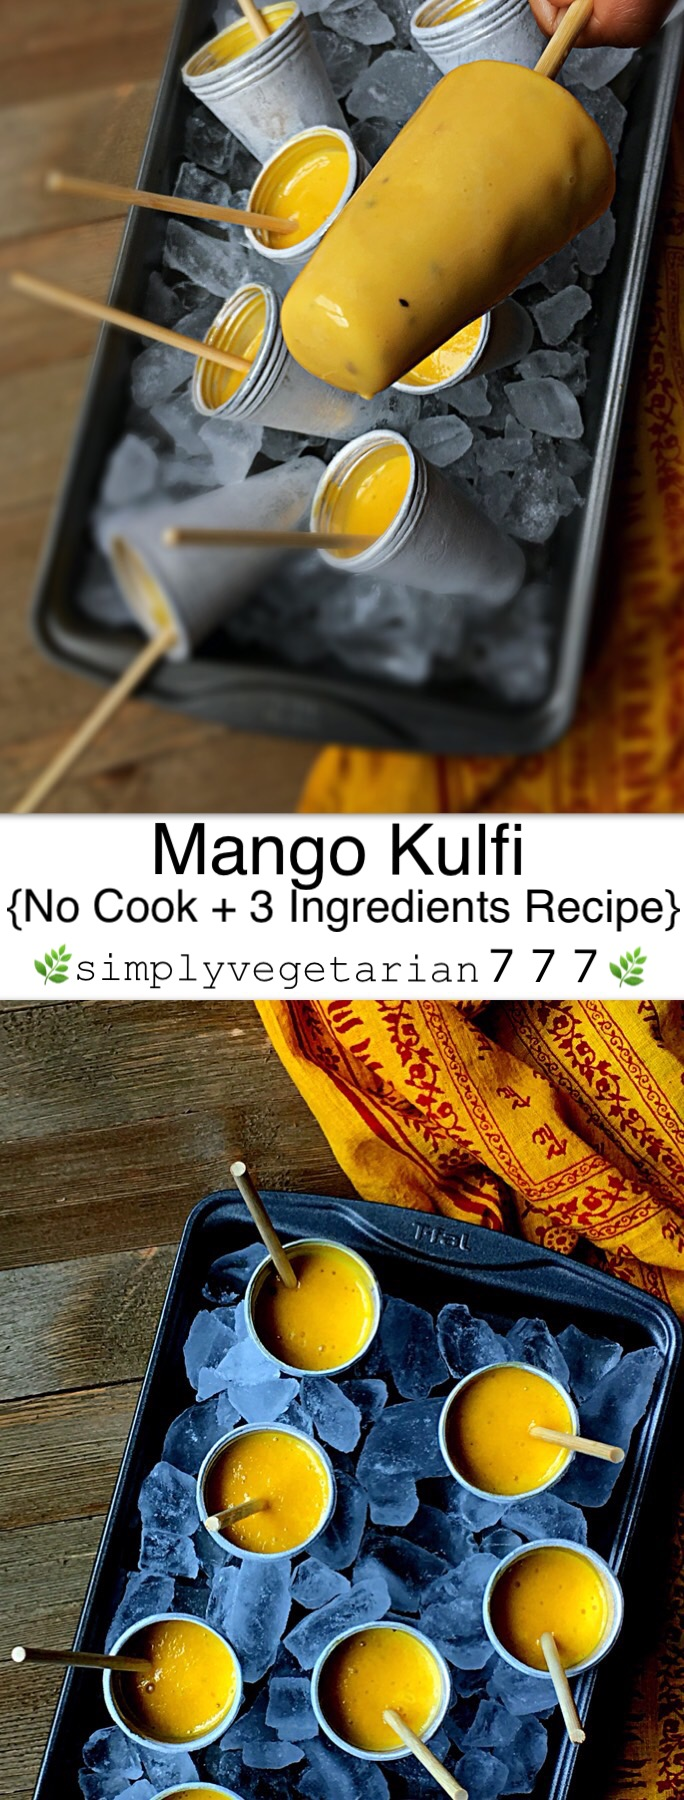 This Mango Ice Cream No CookRecipe is a perfectSUMMER TREAT. The best part is that it is made with just 3 ingredients and is super EASY + DELICIOUS. Make it for your family or make it to entertain your guests. You will make it again and again. It is that stupendously easy. #mangokulfi #kulfi #icecream #indiandessert #mangorecipes #condensedmilk